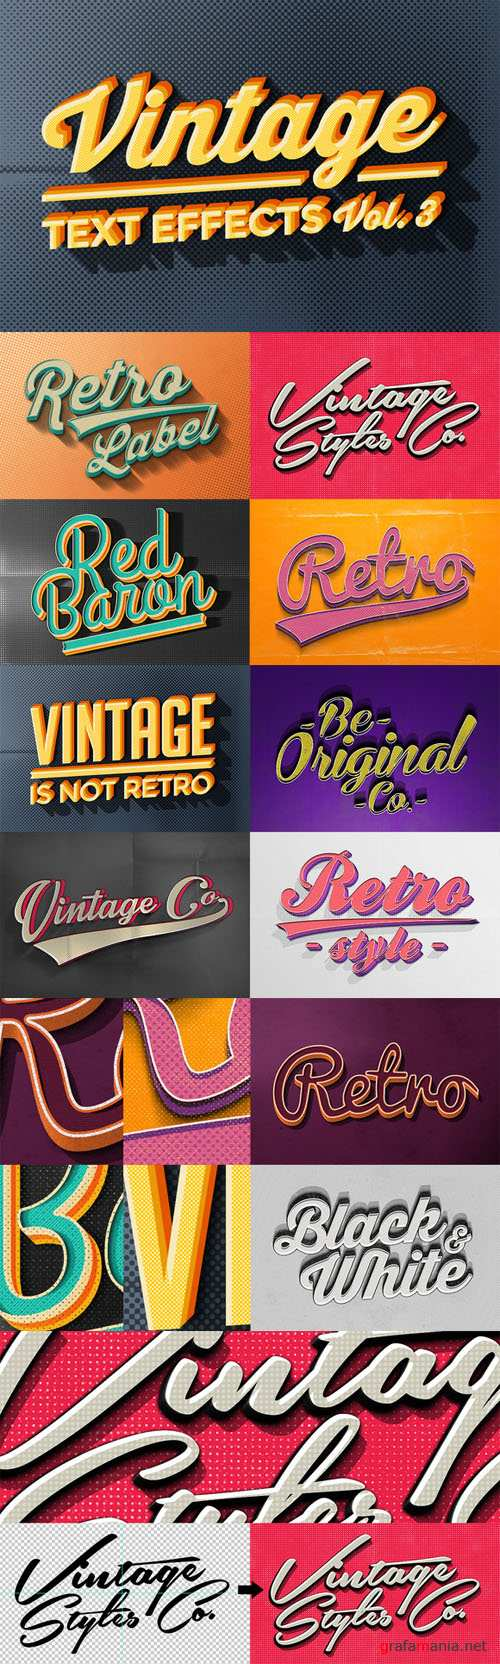 Vintage Text Effects Vol.3 - CM 67096